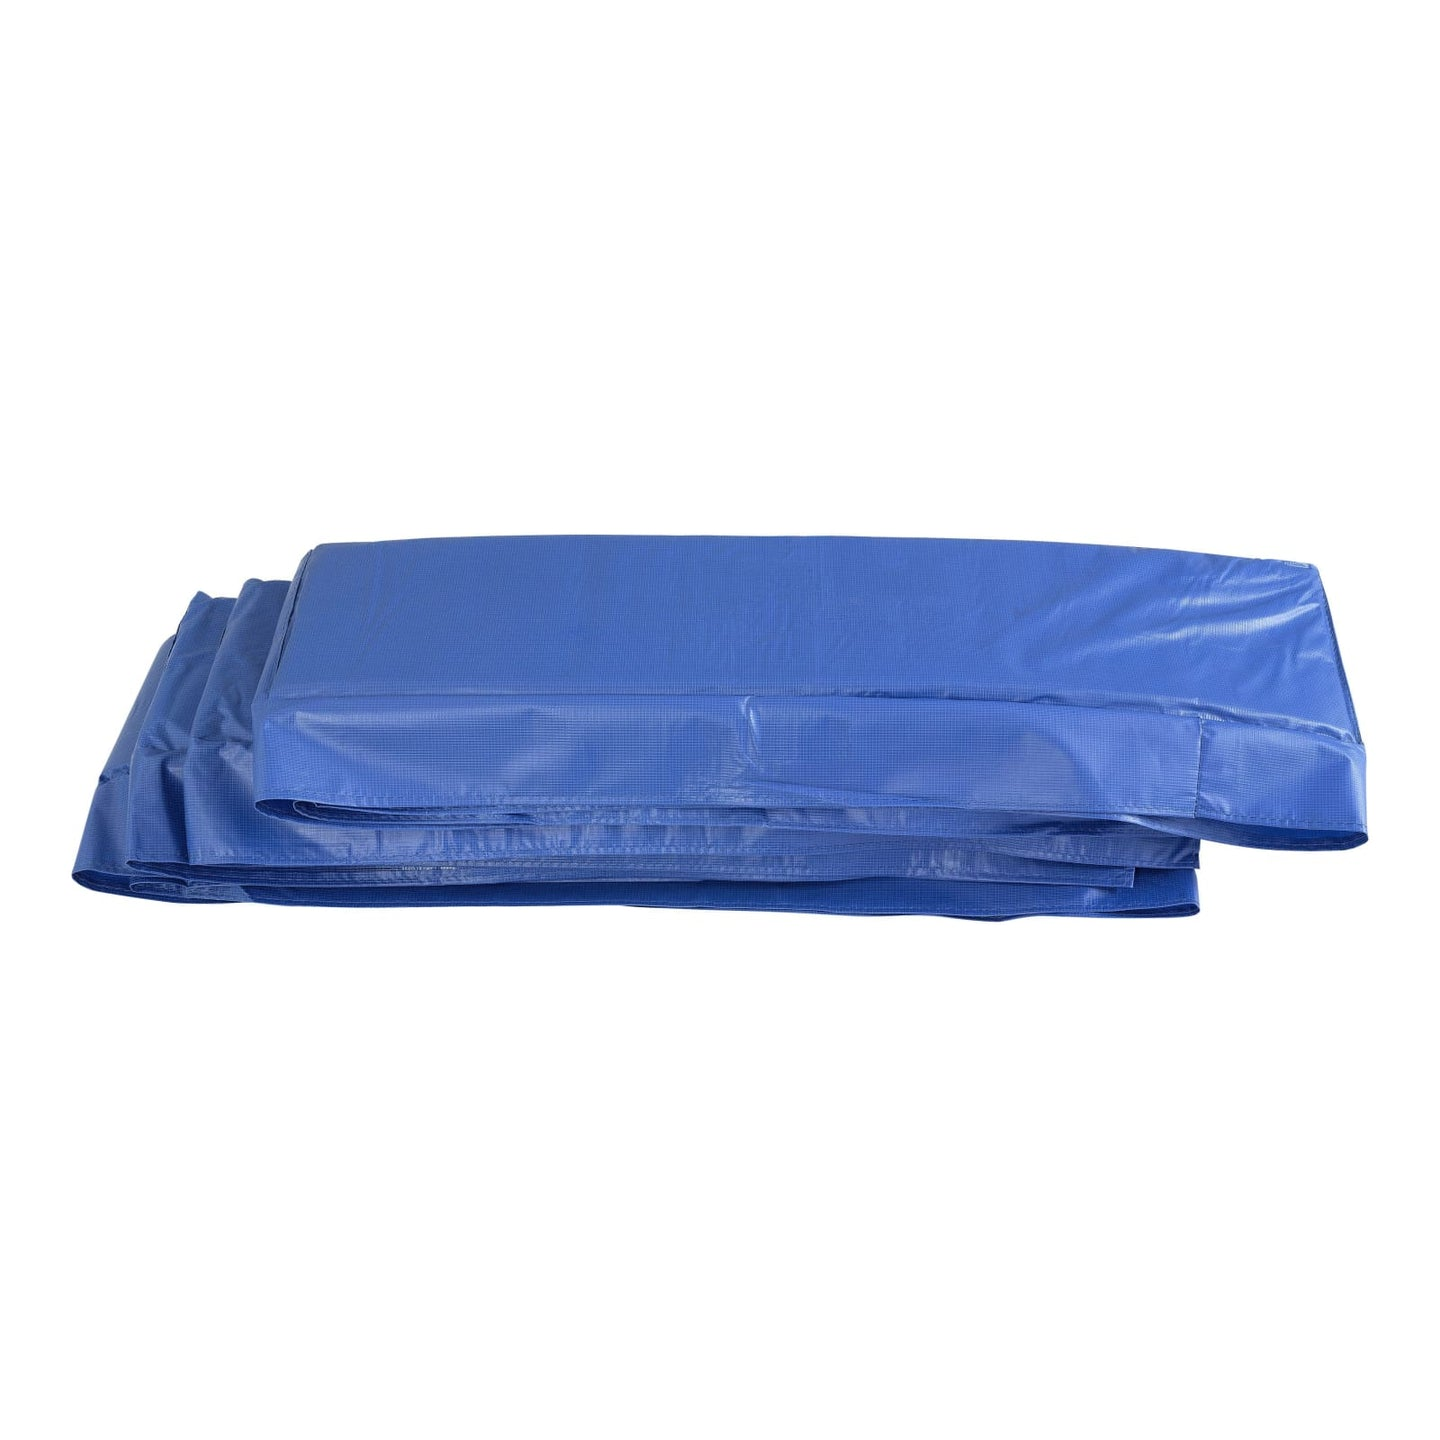 Upper Bounce Super Trampoline Replacement Safety Pad (Spring Cover) Fits For 9 X 15 Ft Rectangular Frames - Blue - Trampoline Replacements